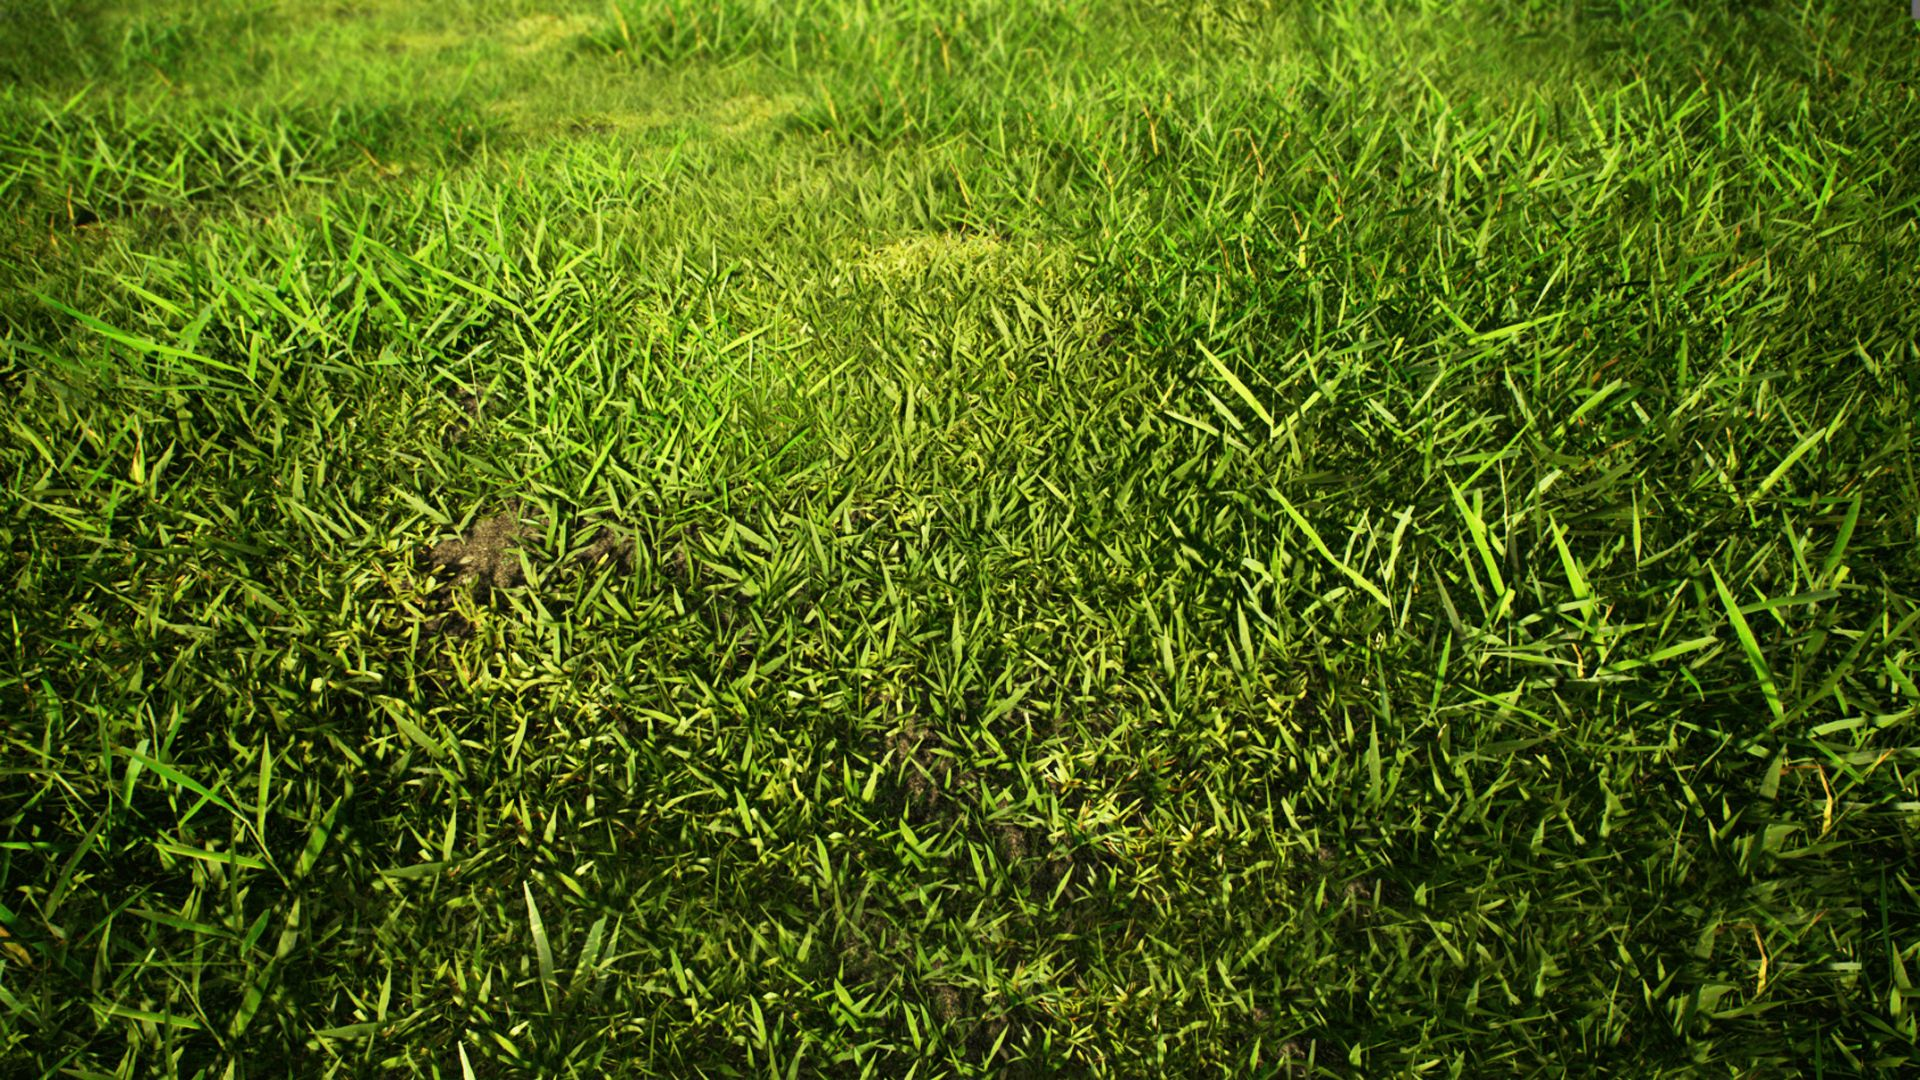 Realistic Grass Pack 01 by dviz in Environments - UE4